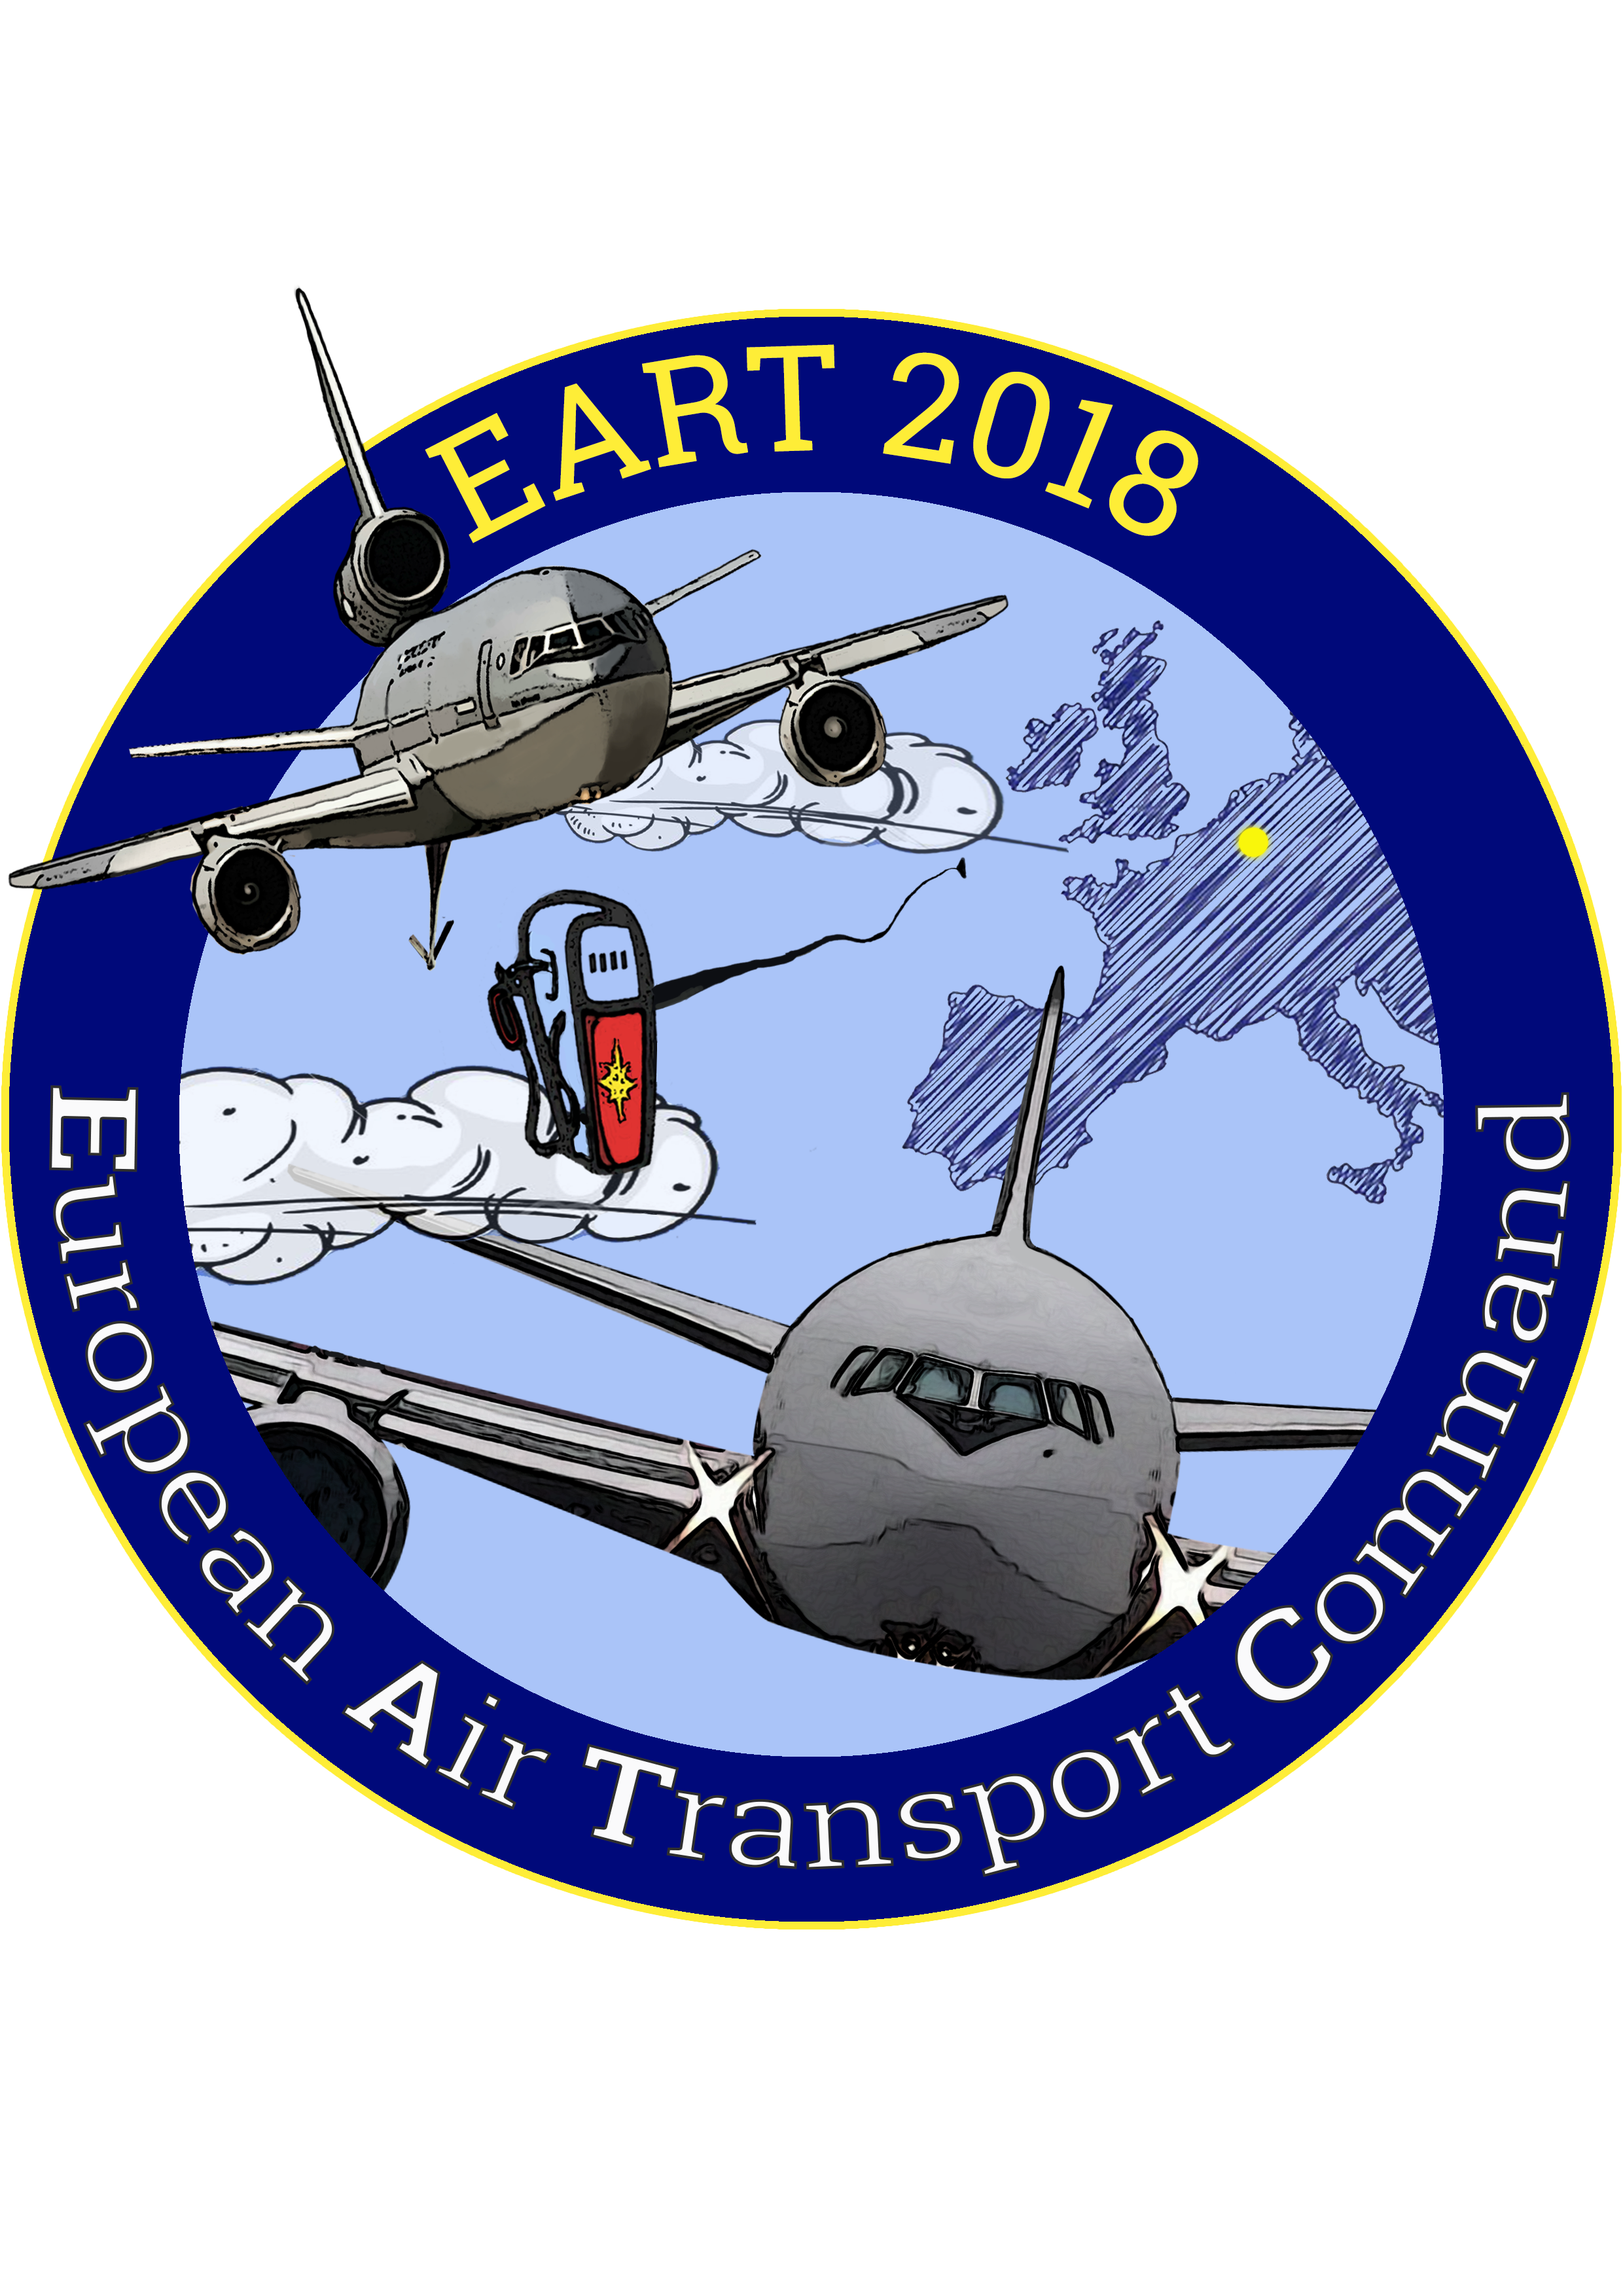 A new edition of EART will be launched on 08 April